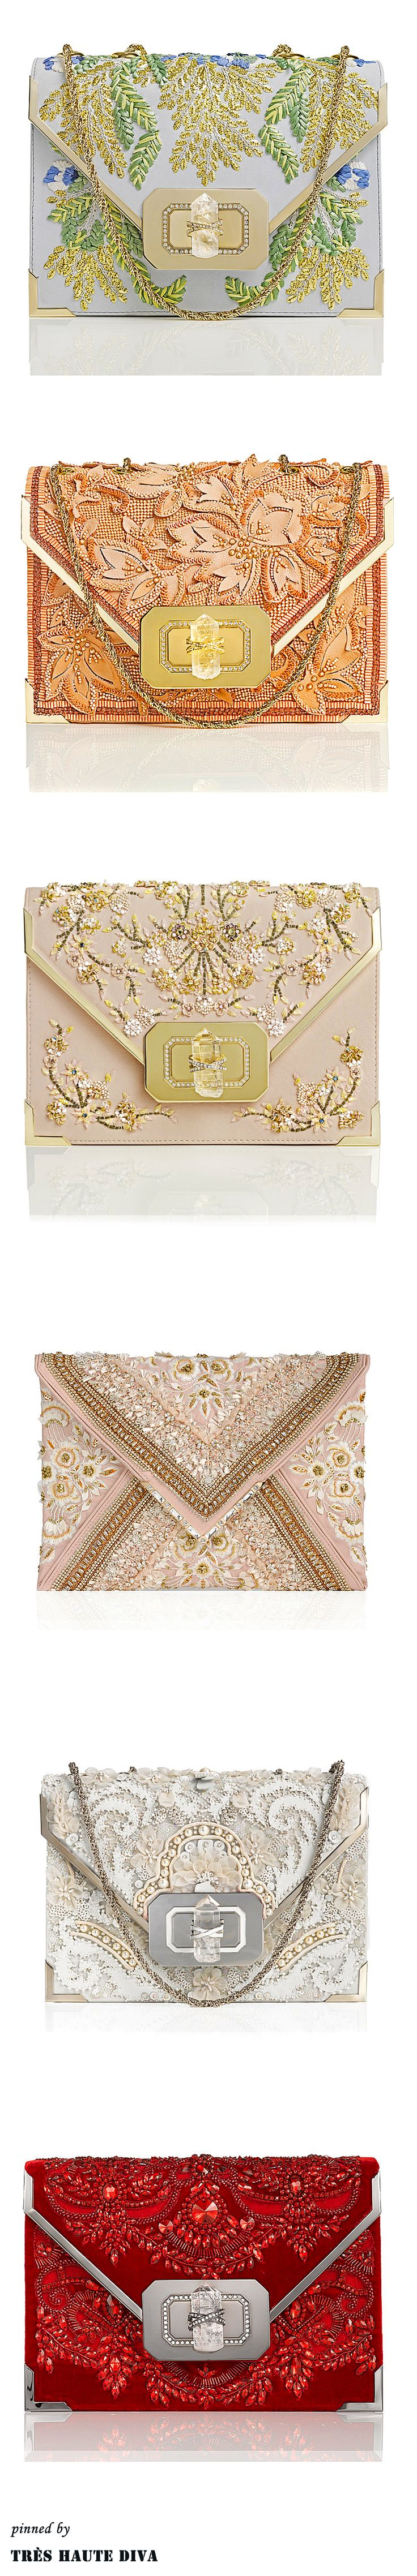 Marchesa Evening Clutches S/S 2014 | #gorgeous #adoredbyadora Read more at www.adoredbyadora.com! Leave a comment!